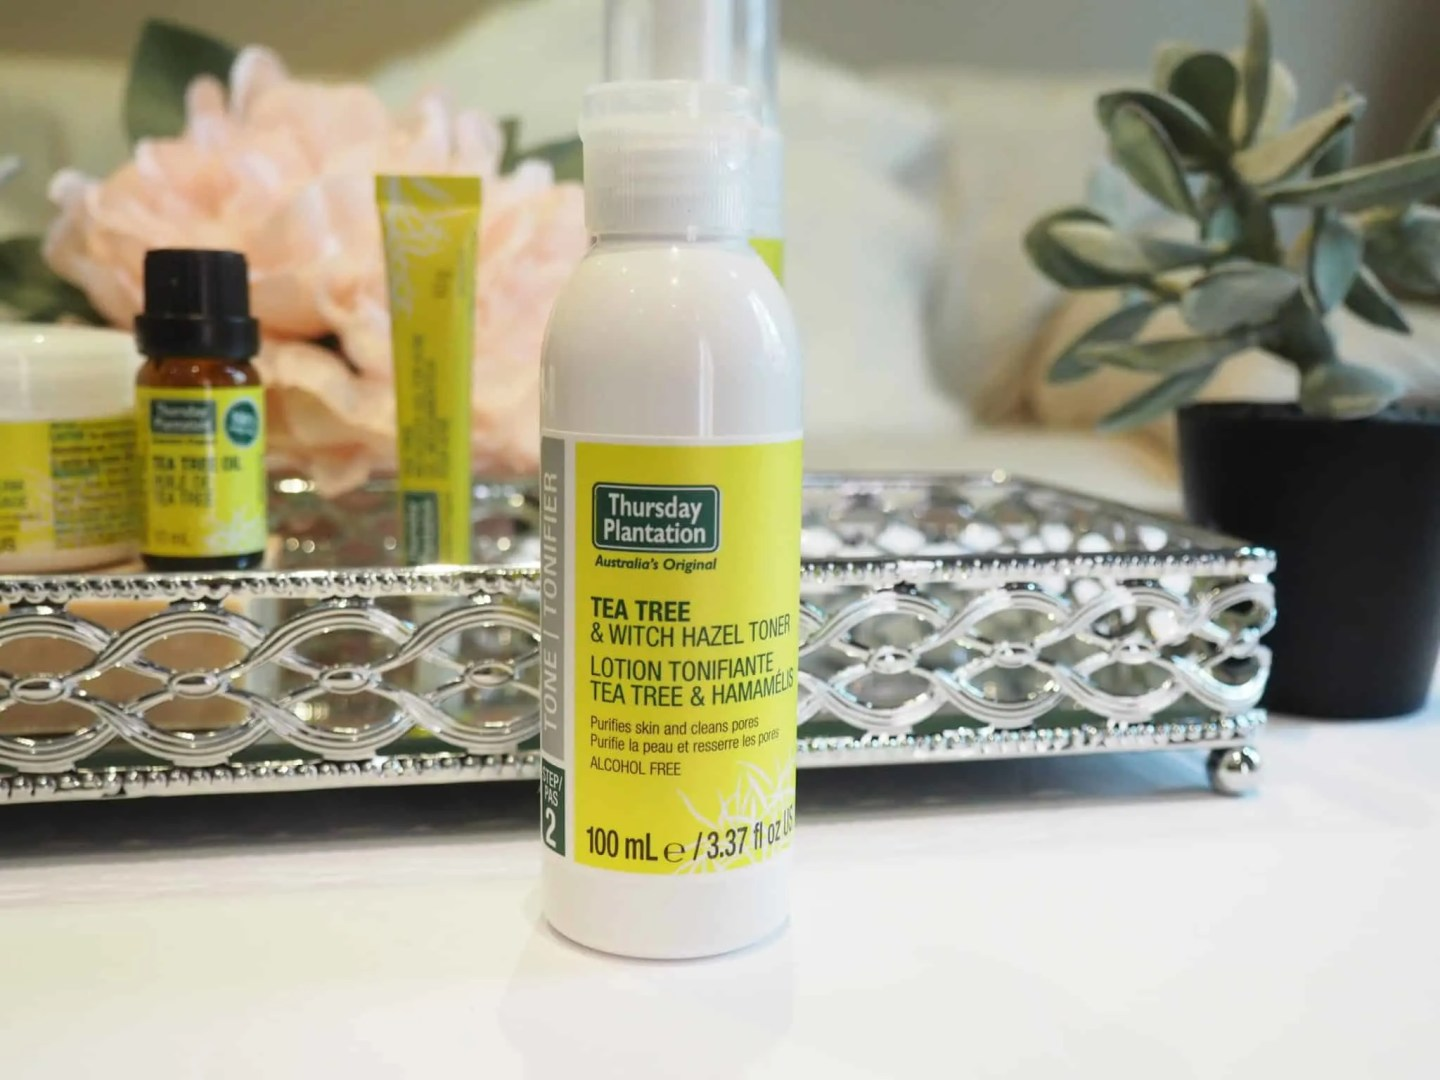 Thursday Plantation Tea Tree Toner